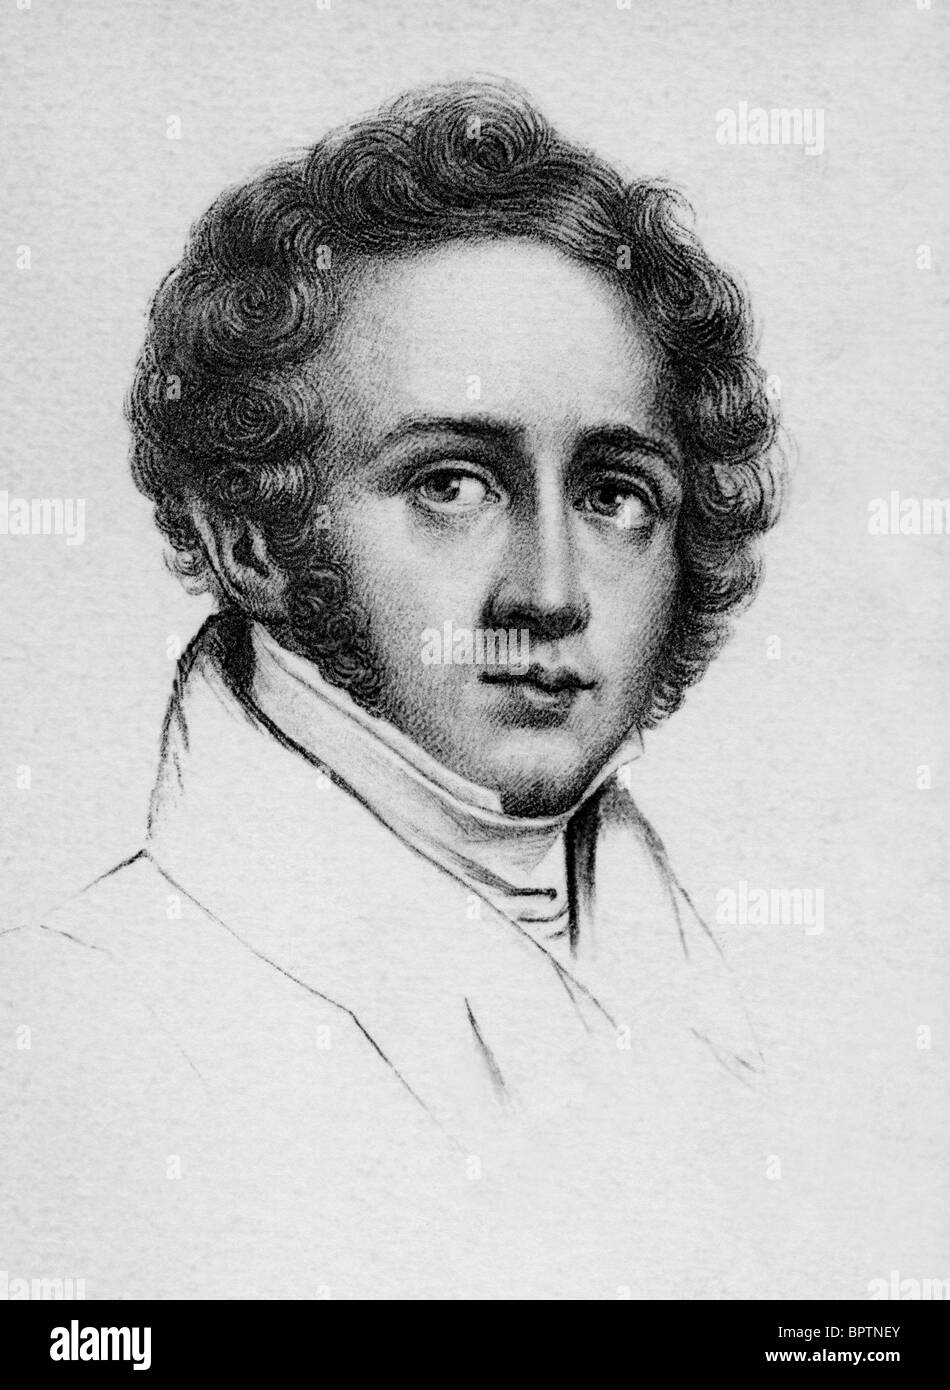 VINCENZO BELLINI COMPOSER (1830) - Stock Image